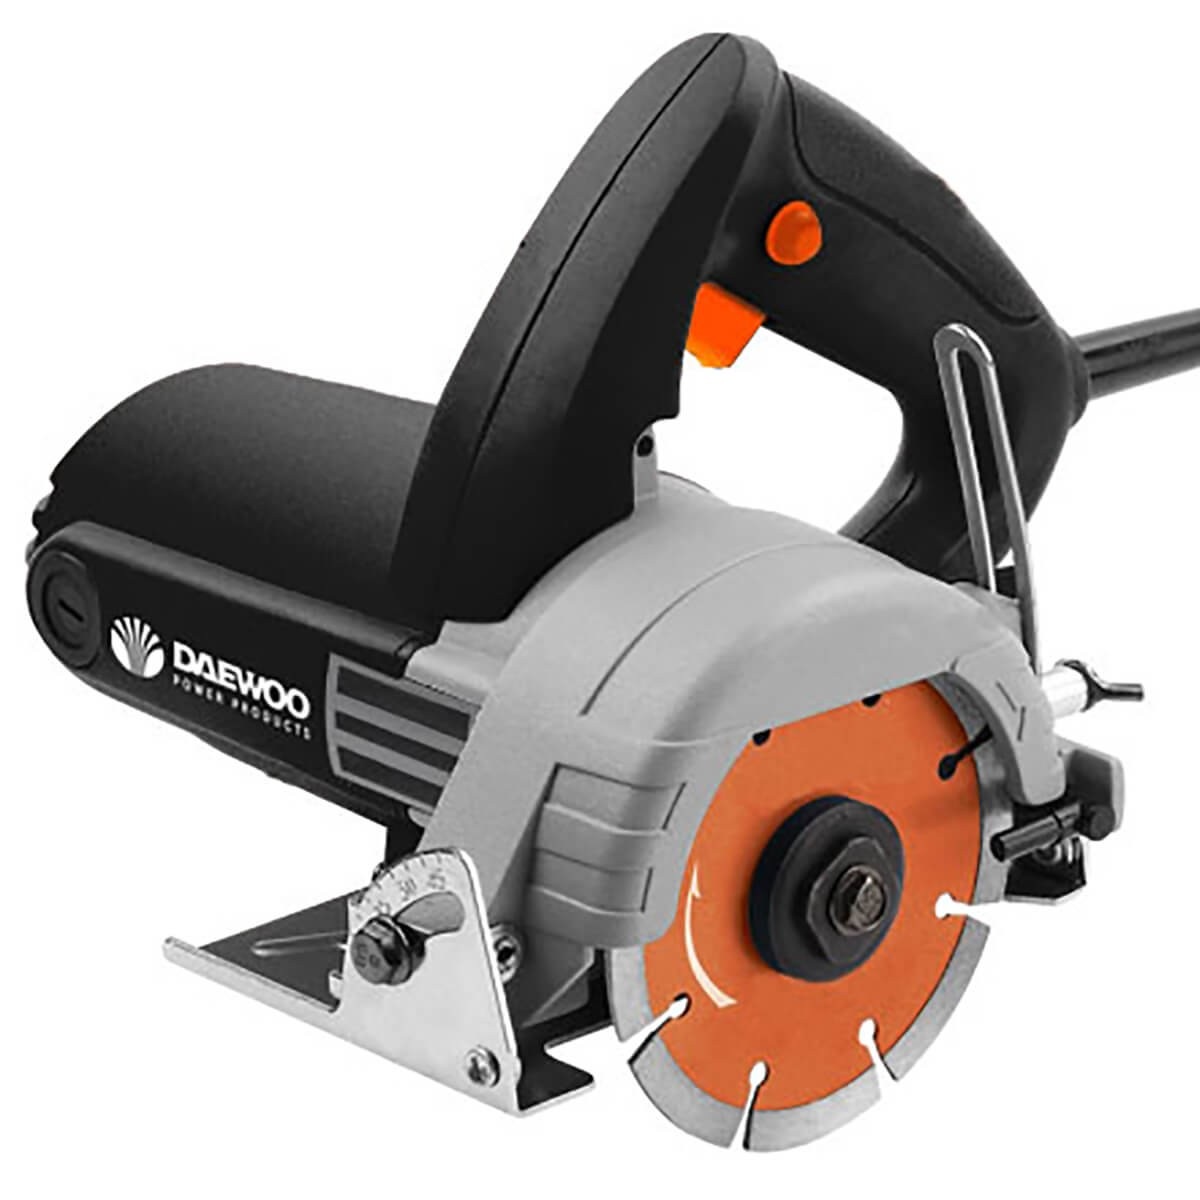 Daewoo Electric Marble cutter for Cutting Wood Marble Polishing and Buffing